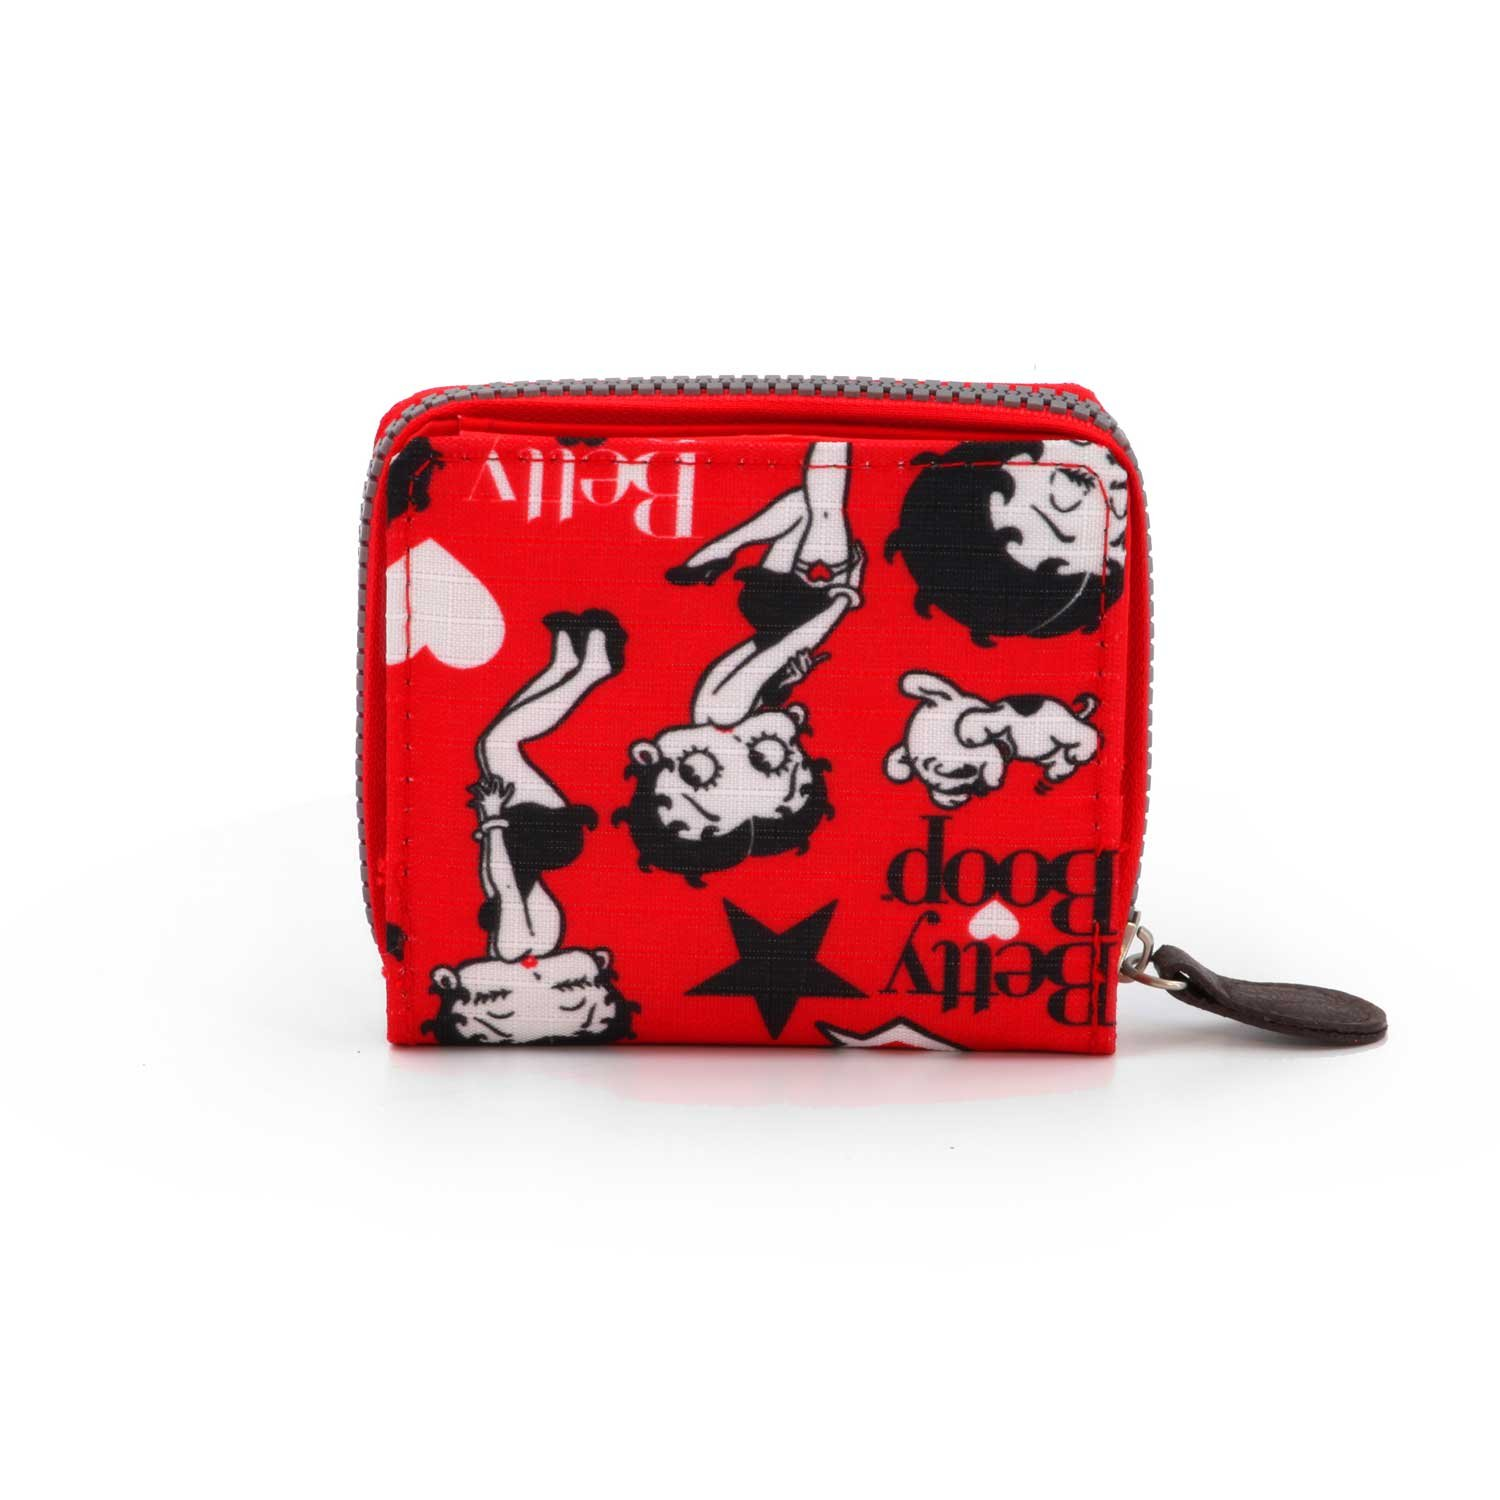 Karactermania 36551 Betty Boop Rouge Monederos, 11 cm, Rojo